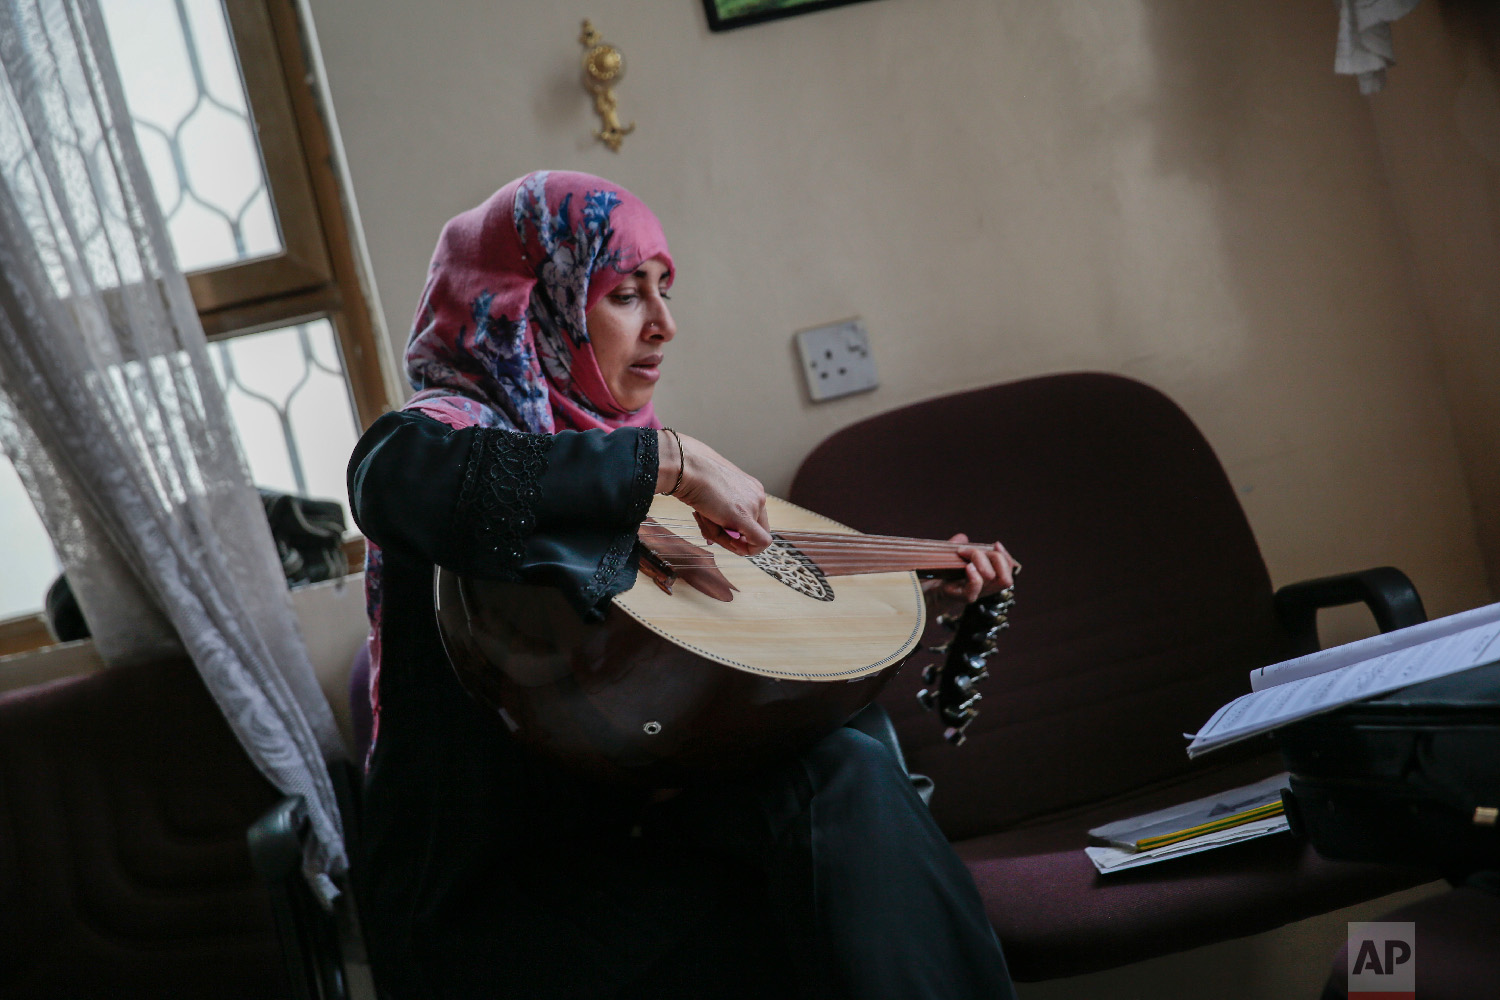 A female Yemeni music student practices playing Oud during a music class at the Cultural Centre in Sanaa, Yemen on Sunday, April 8, 2018.(AP Photo/Hani Mohammed)